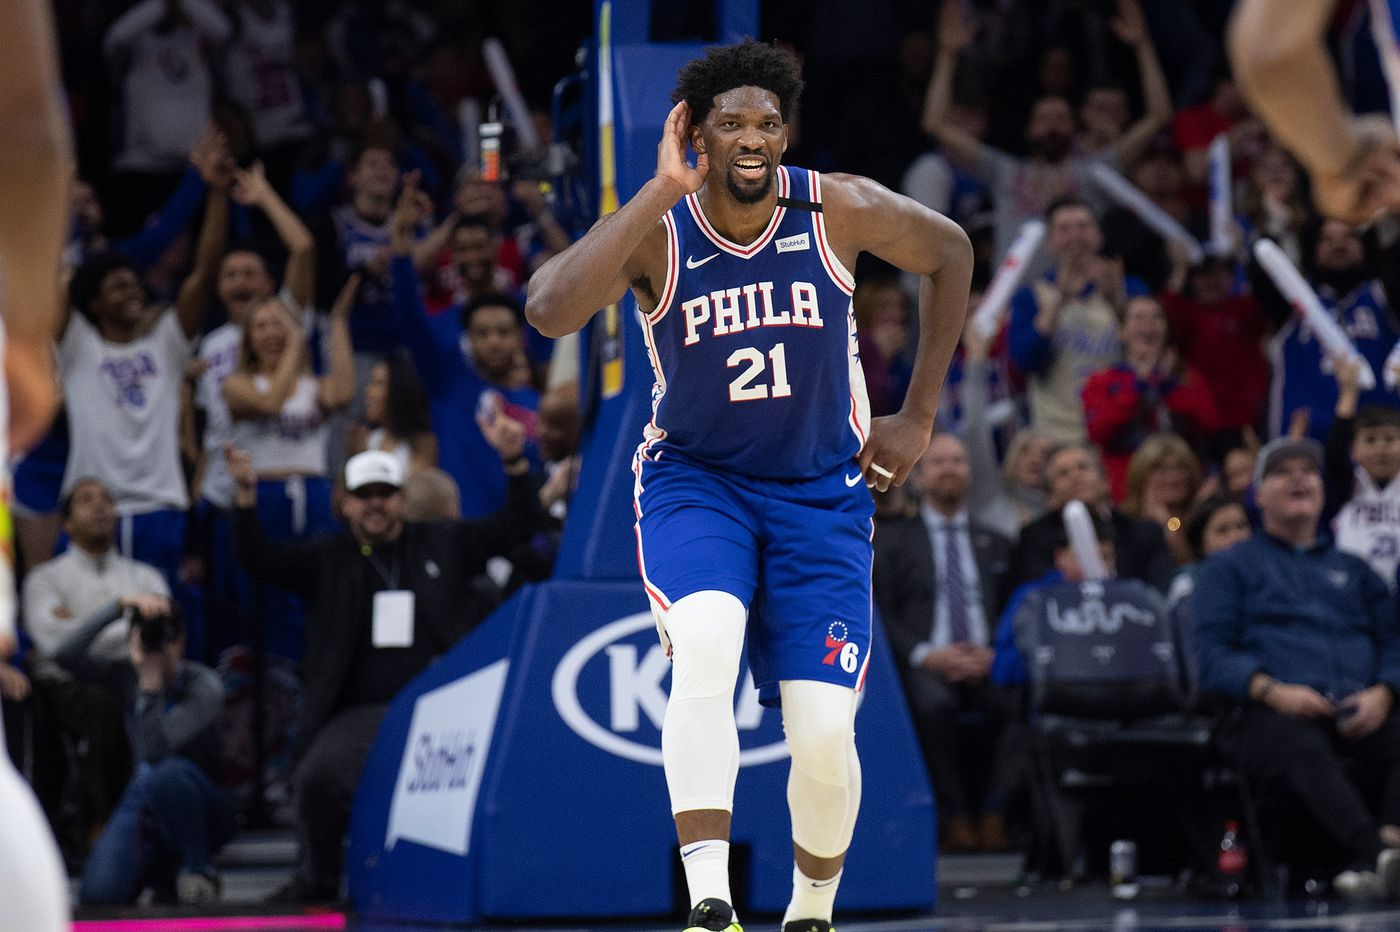 It's Joel Embiid's birthday, so let's dive into his numbers